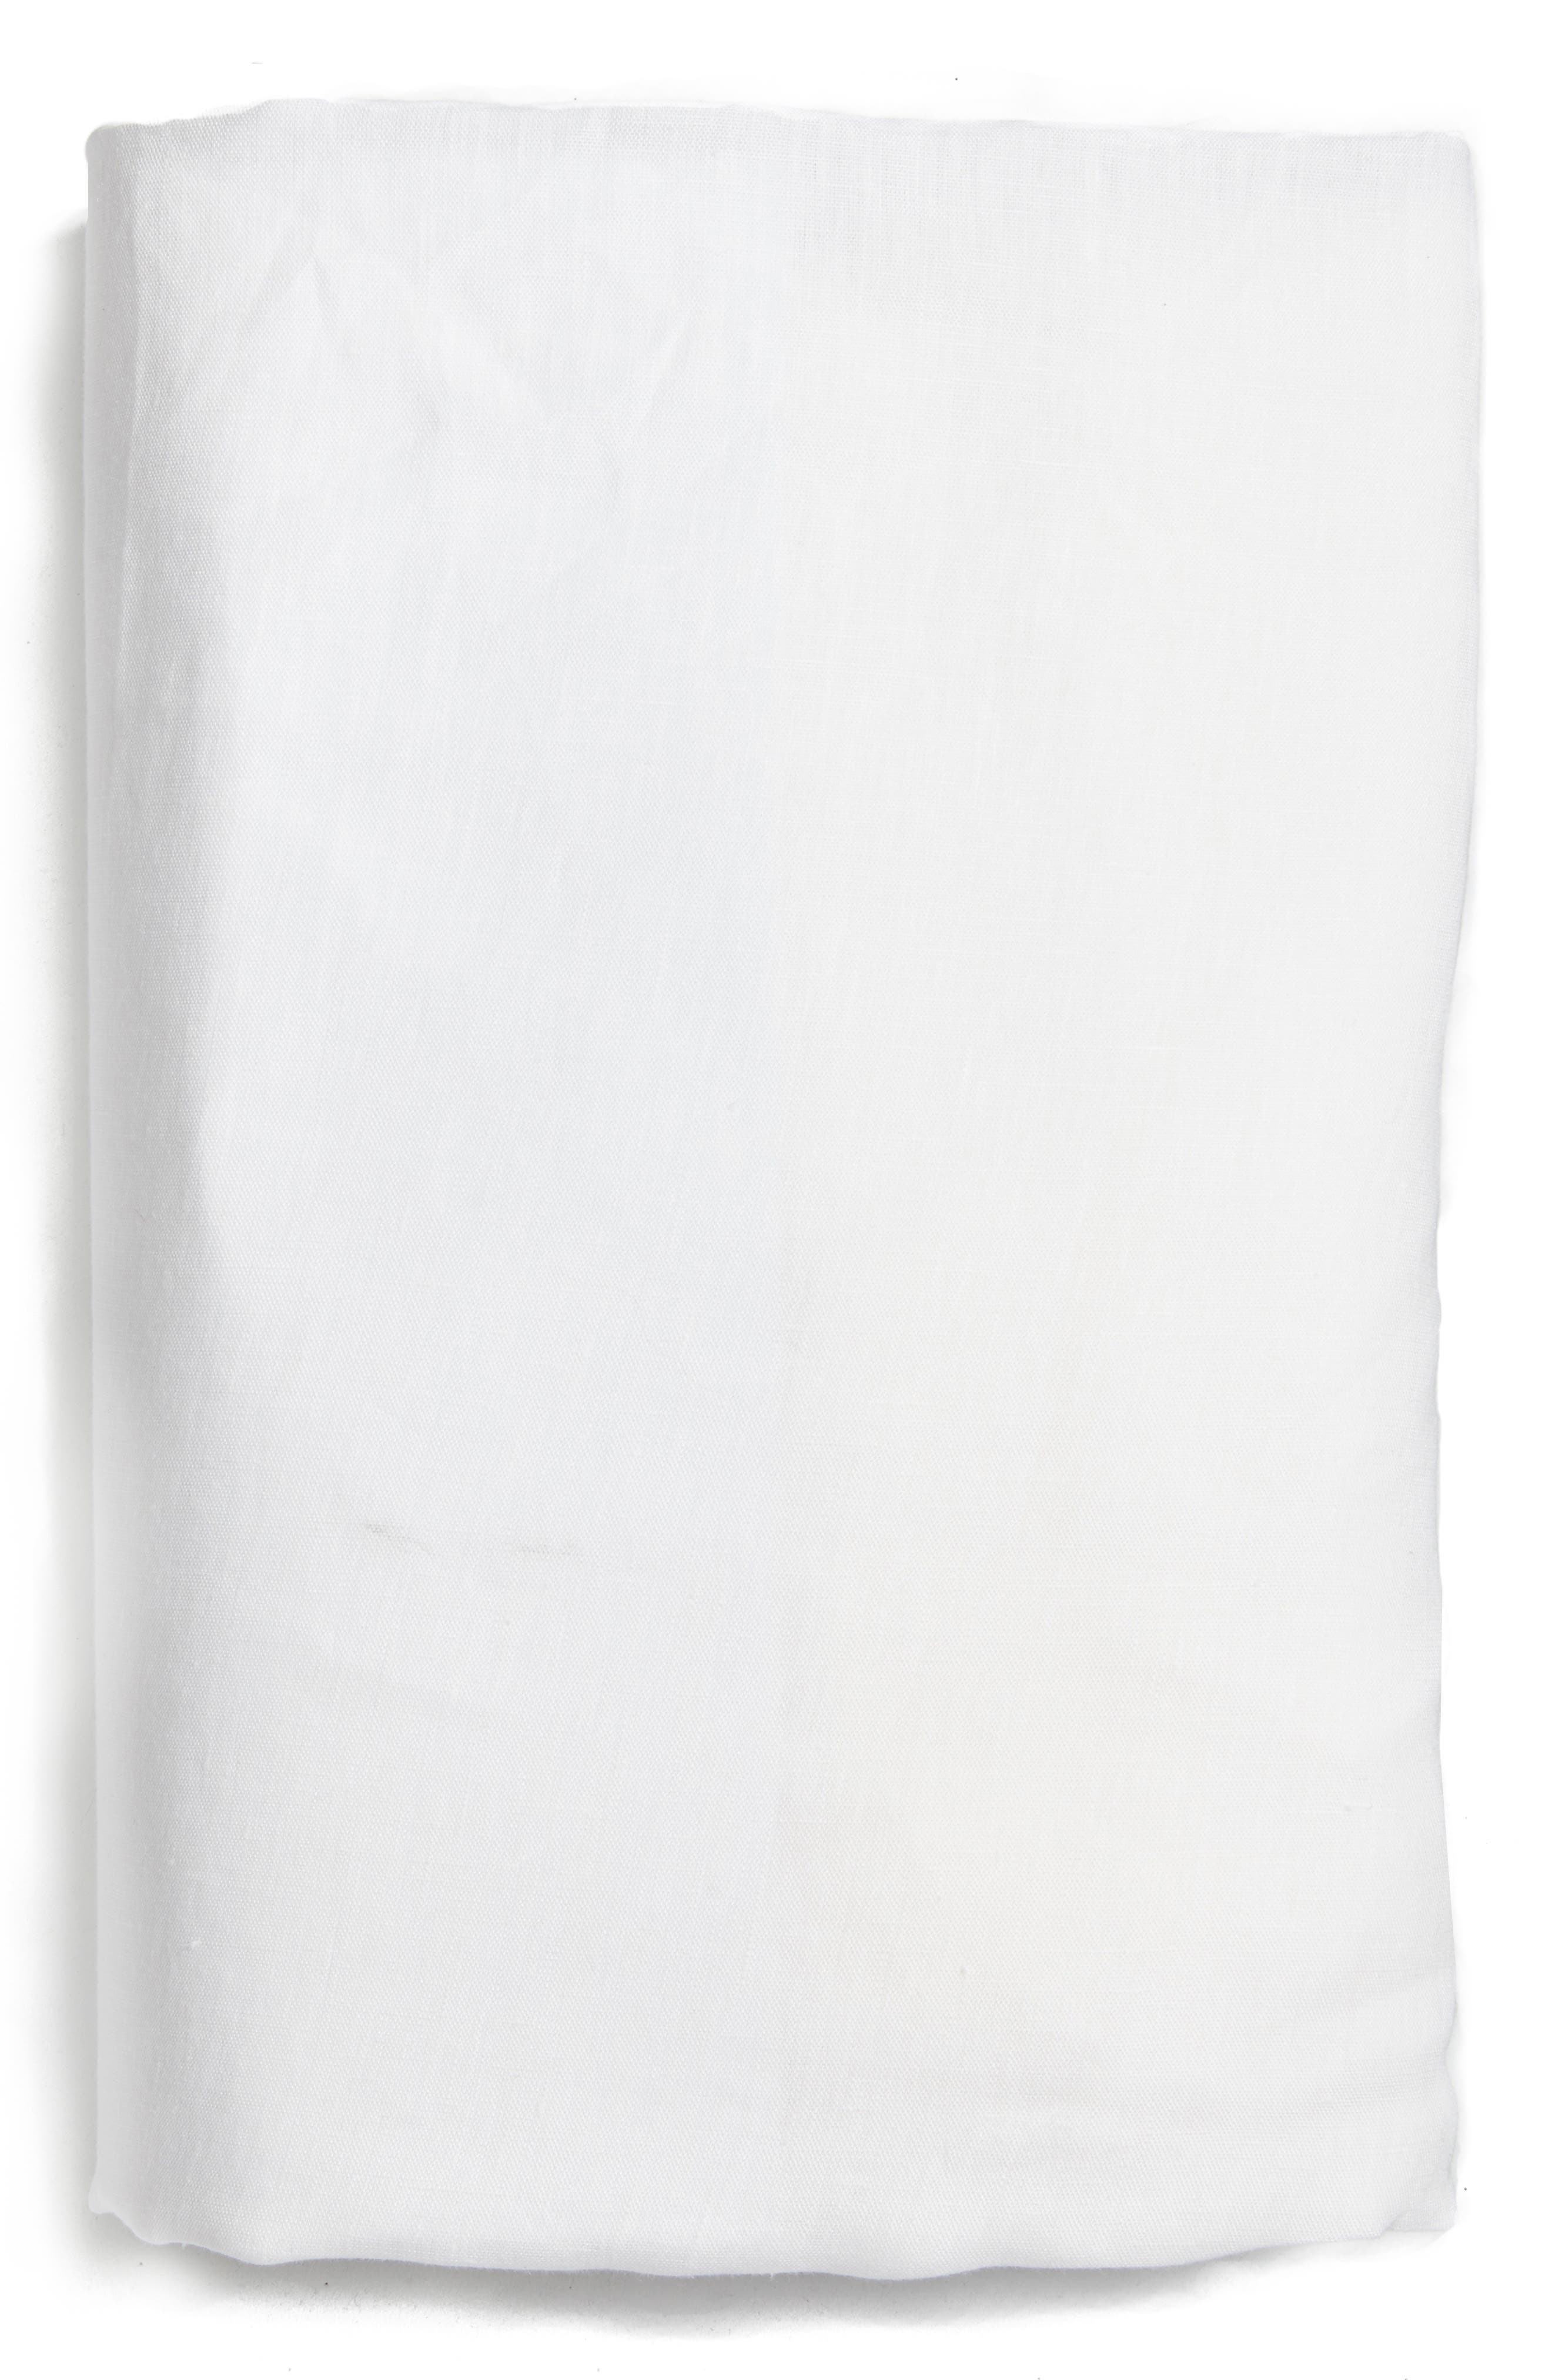 Solo Linen Fitted Sheet,                         Main,                         color, 100